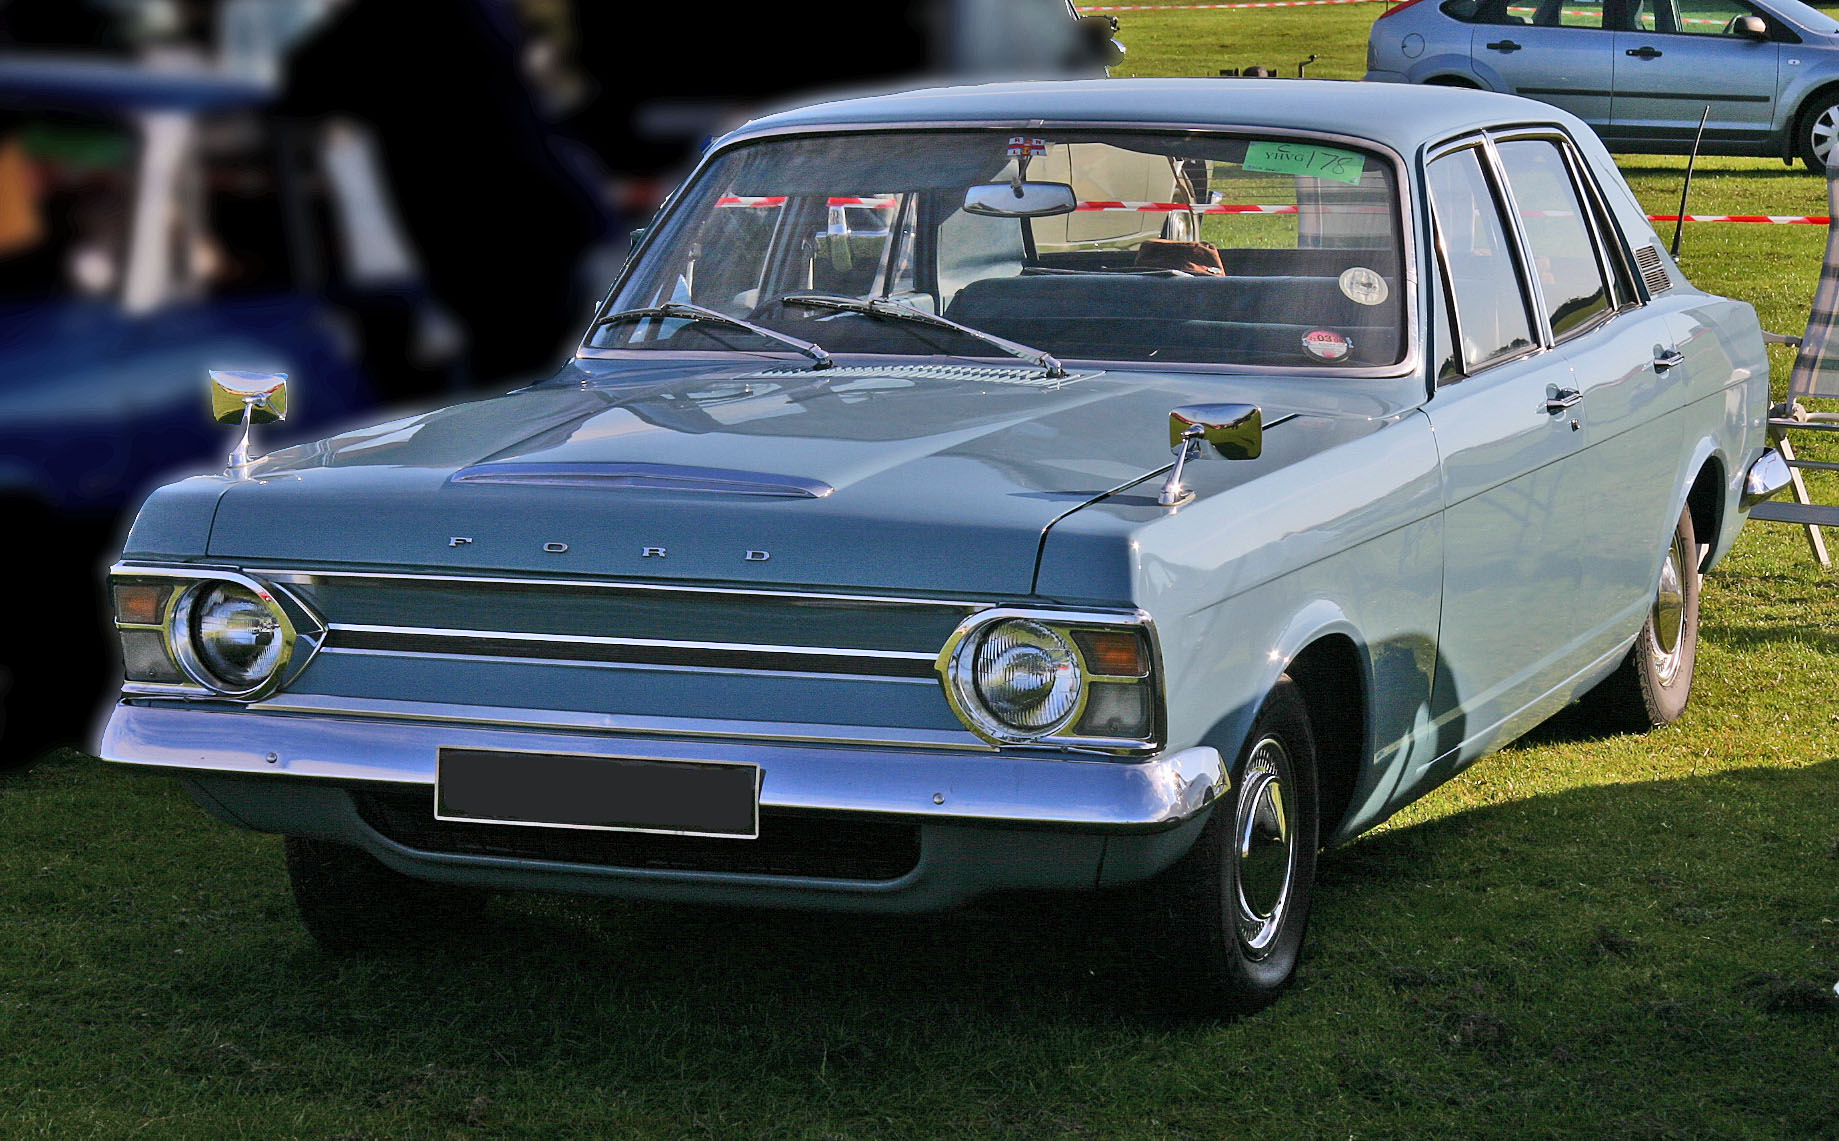 1964 Ford Falcon Parts File:Ford Zephyr 3008E front.jpg - Wikipedia